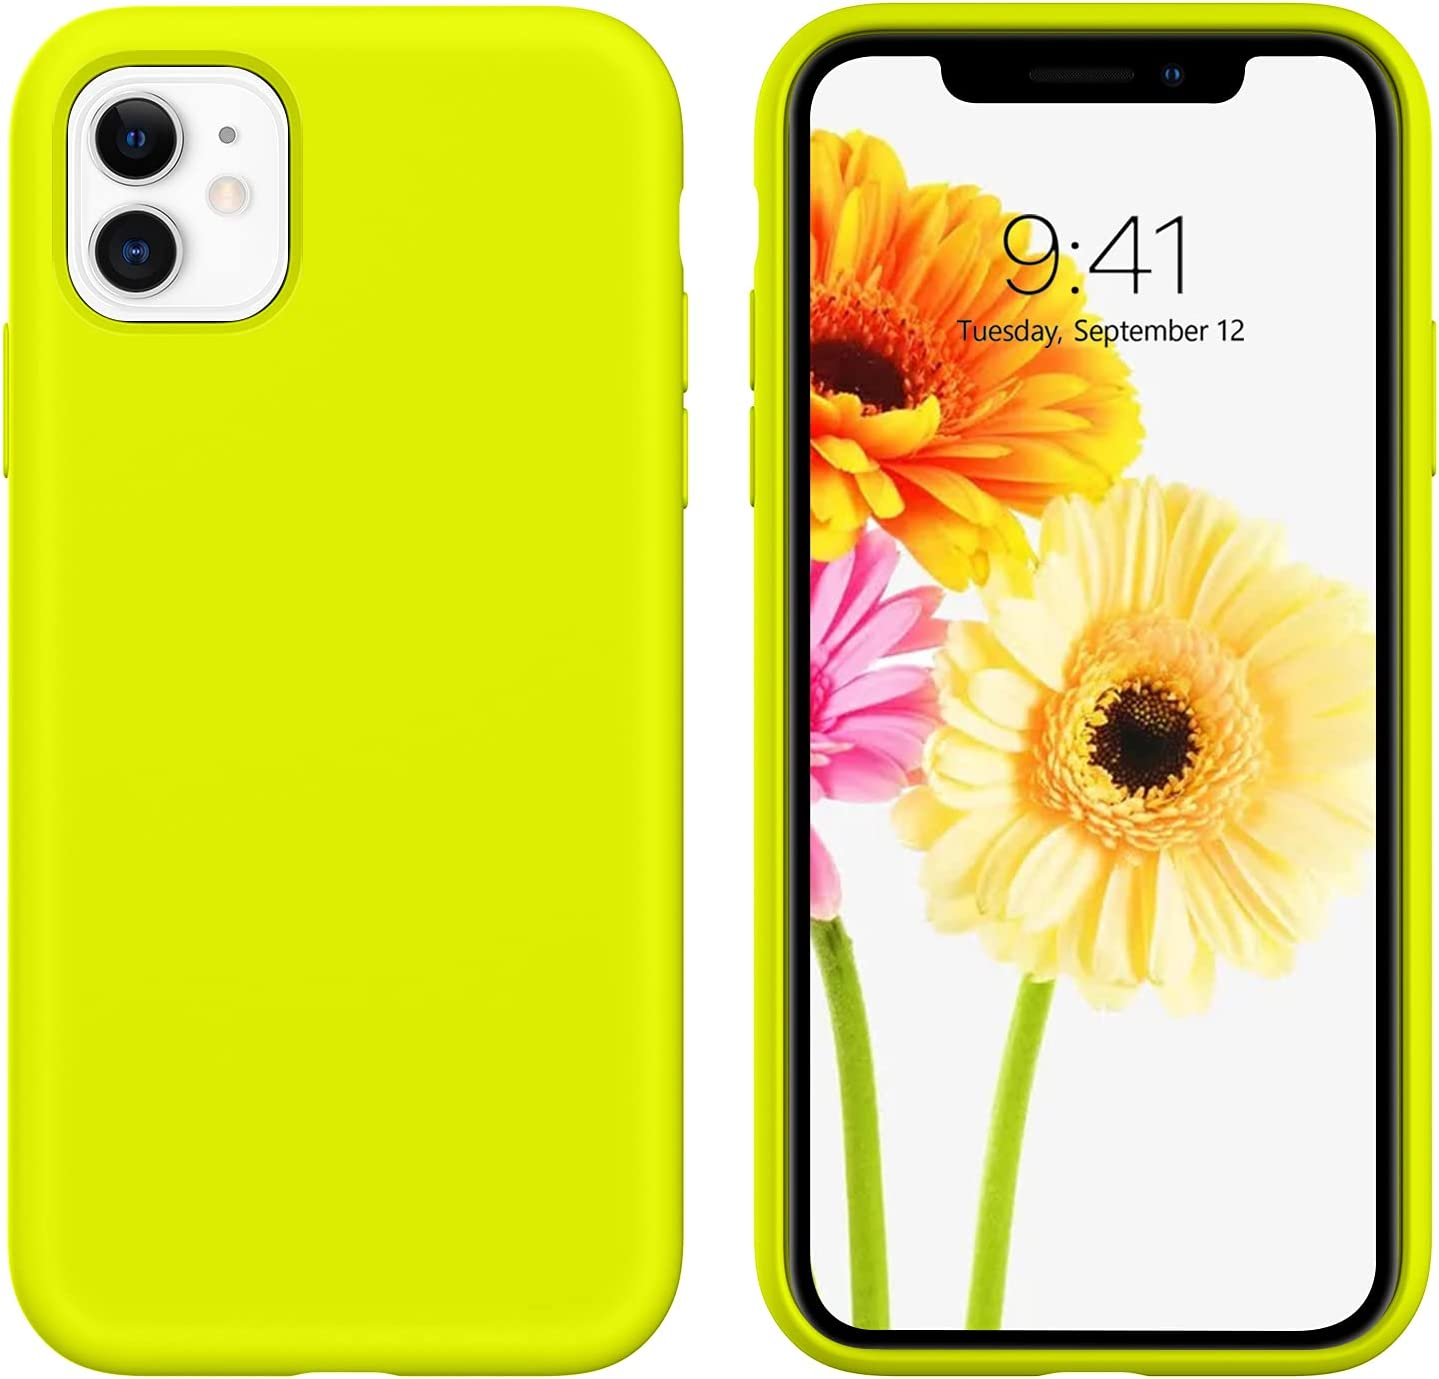 DUEDUE iPhone 11 Case,Liquid Silicone Soft Gel Rubber Slim Cover with Microfiber Cloth Lining Cushion Shockproof Full Protective Anti Scratch Case for iPhone 11 for Women Girls,Fluorescent Yellow